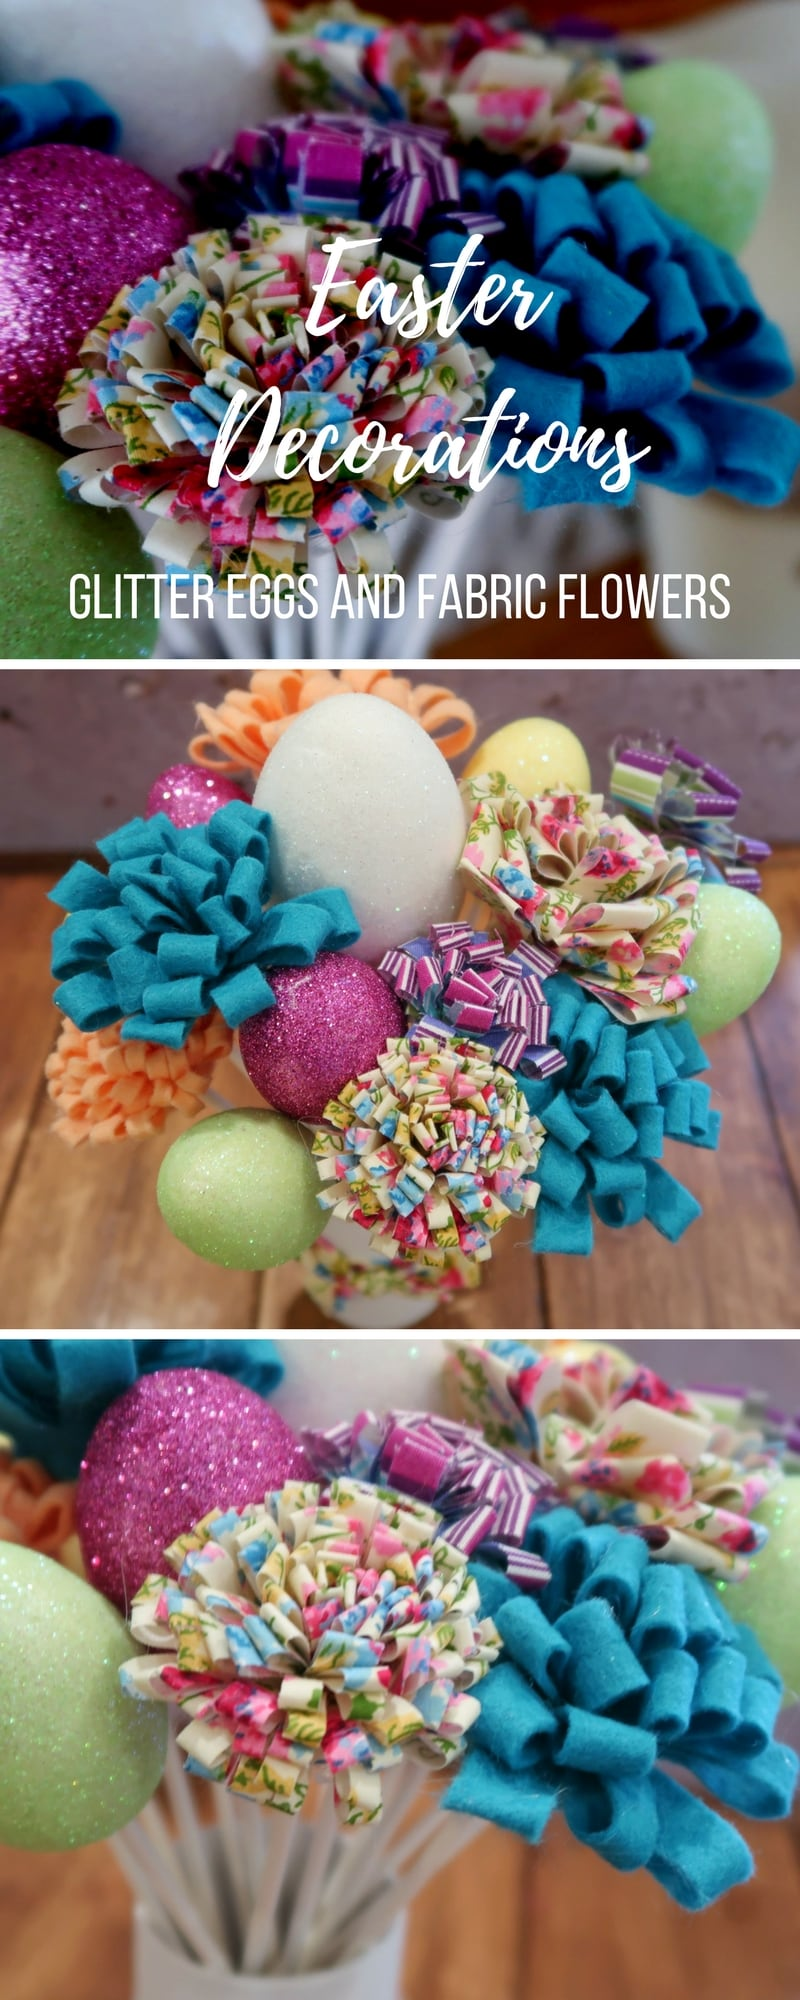 Easter Decorations - How to make glitter eggs and fabric flowers to create a beautiful Easter centrepiece decoration.